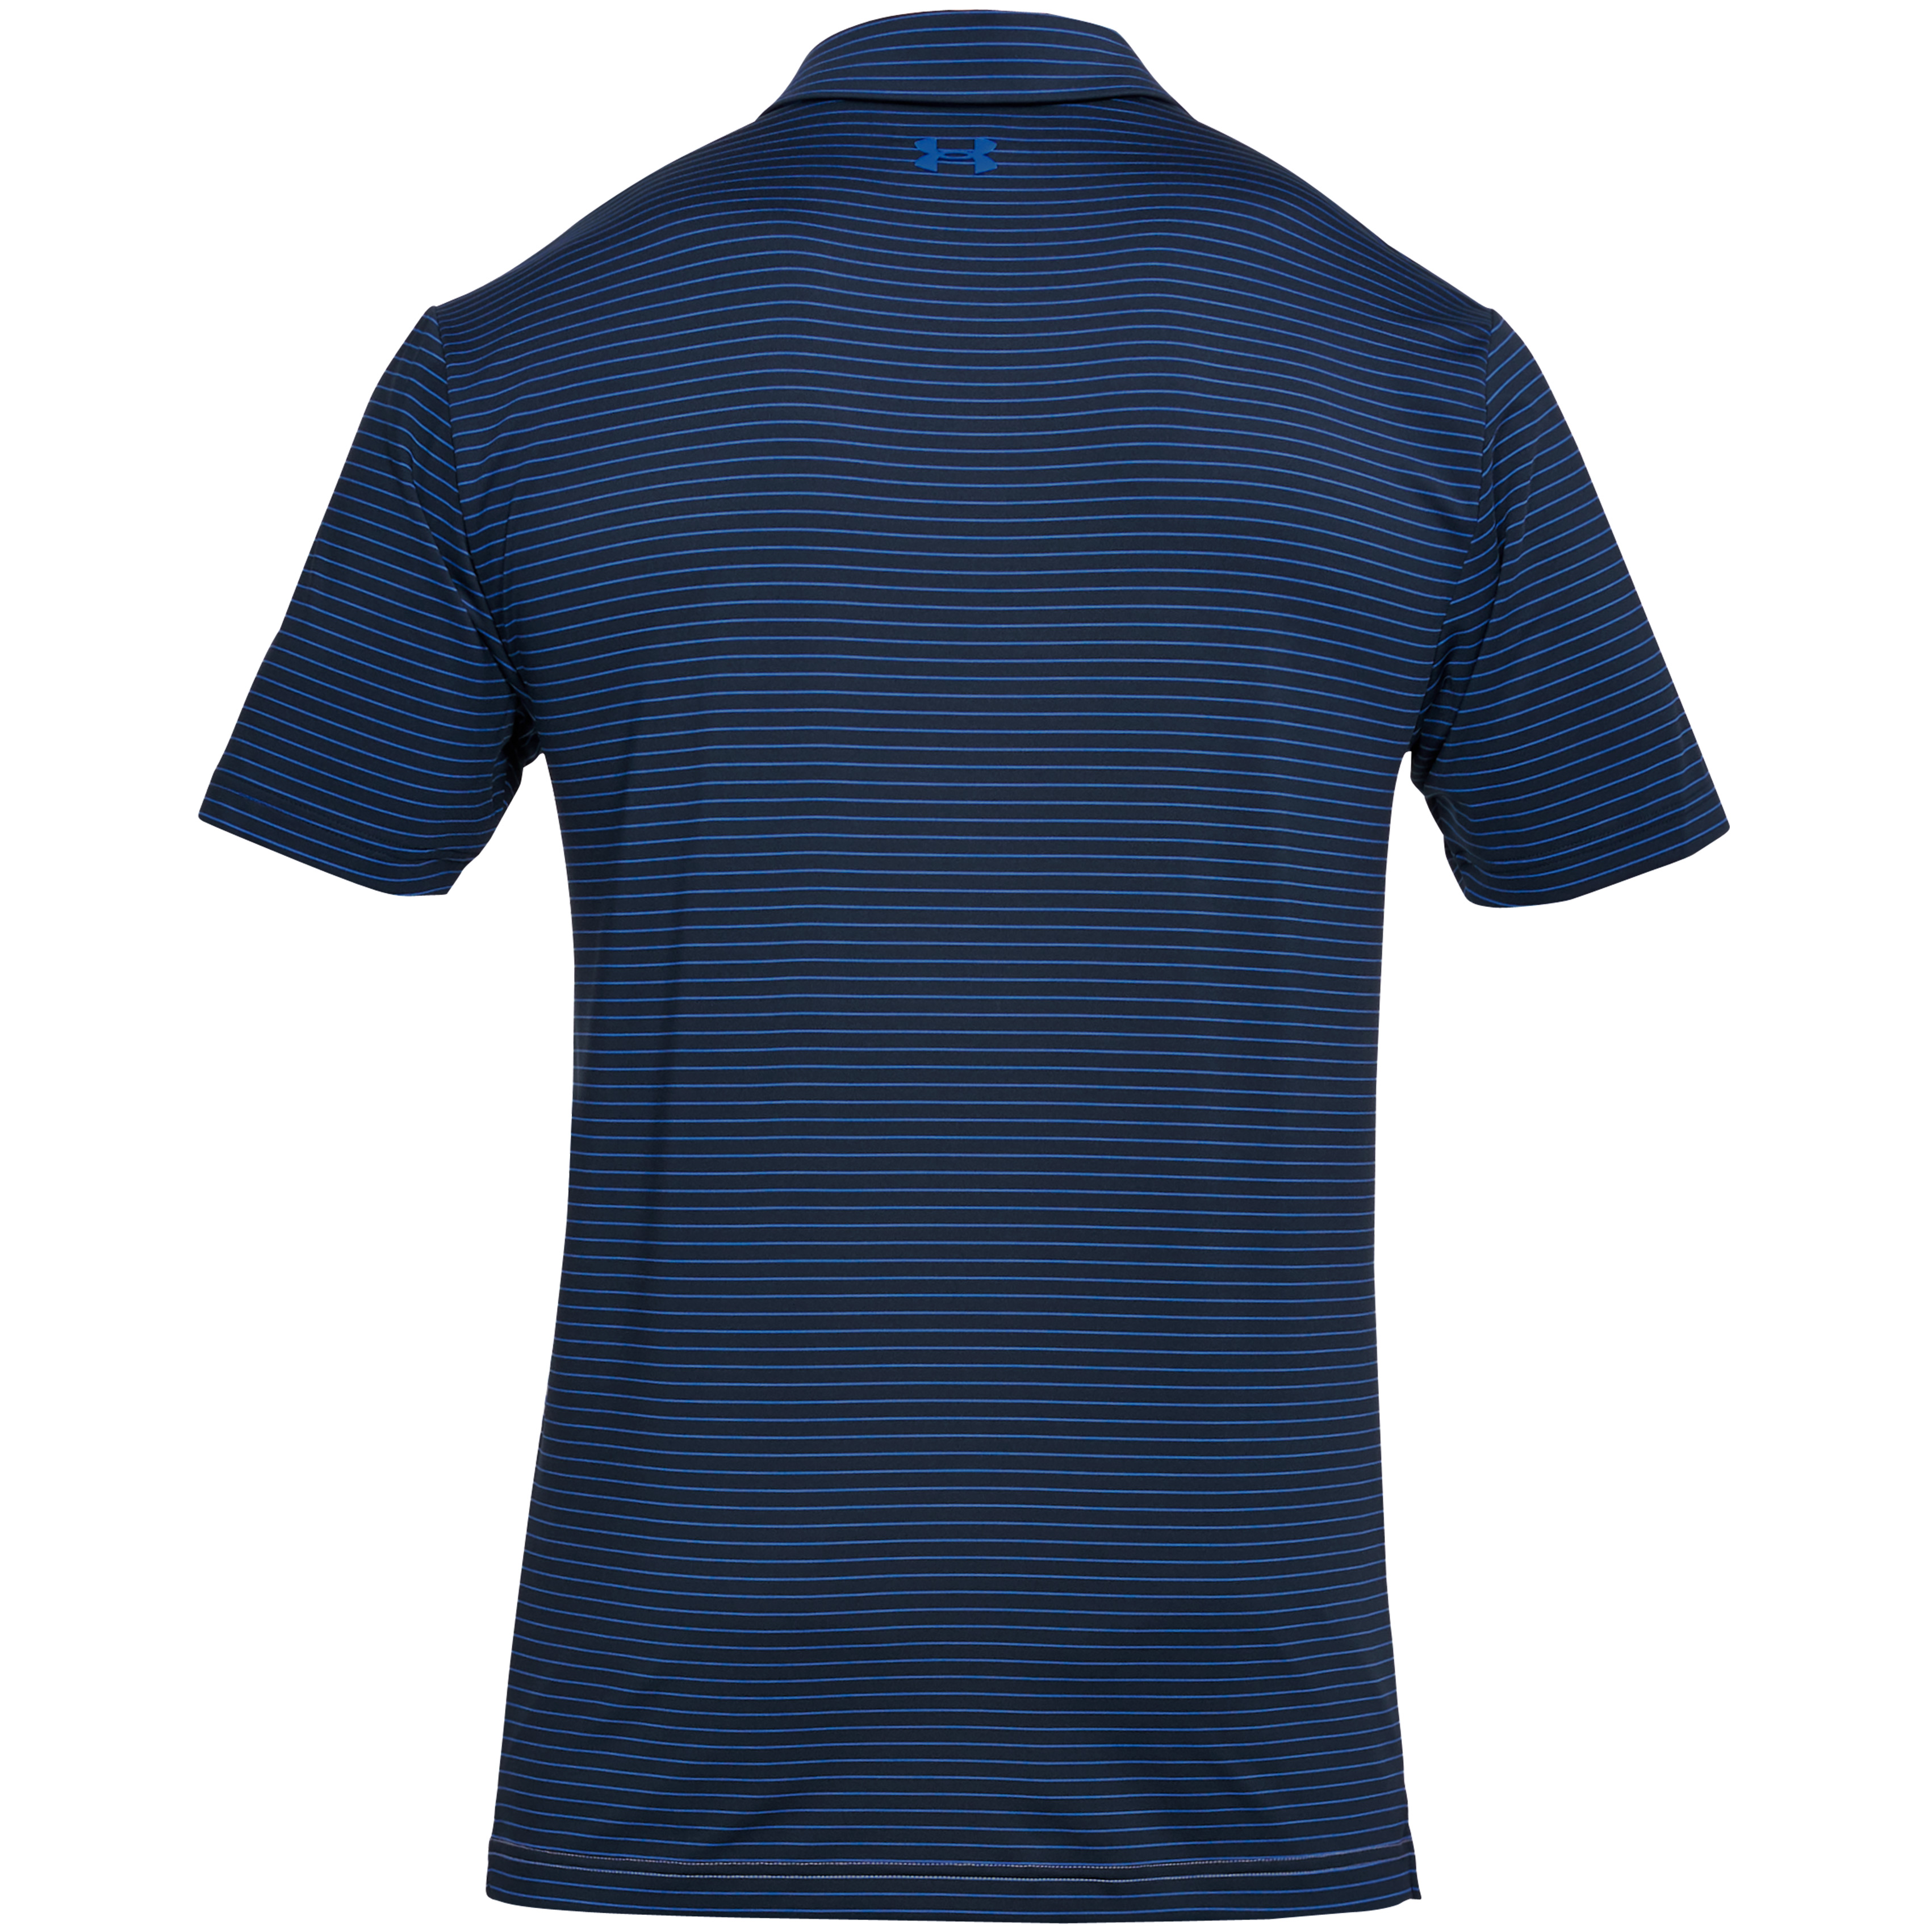 Under-Armour-Mens-UA-Playoff-Performance-Golf-Polo-Shirt-33-OFF-RRP thumbnail 10